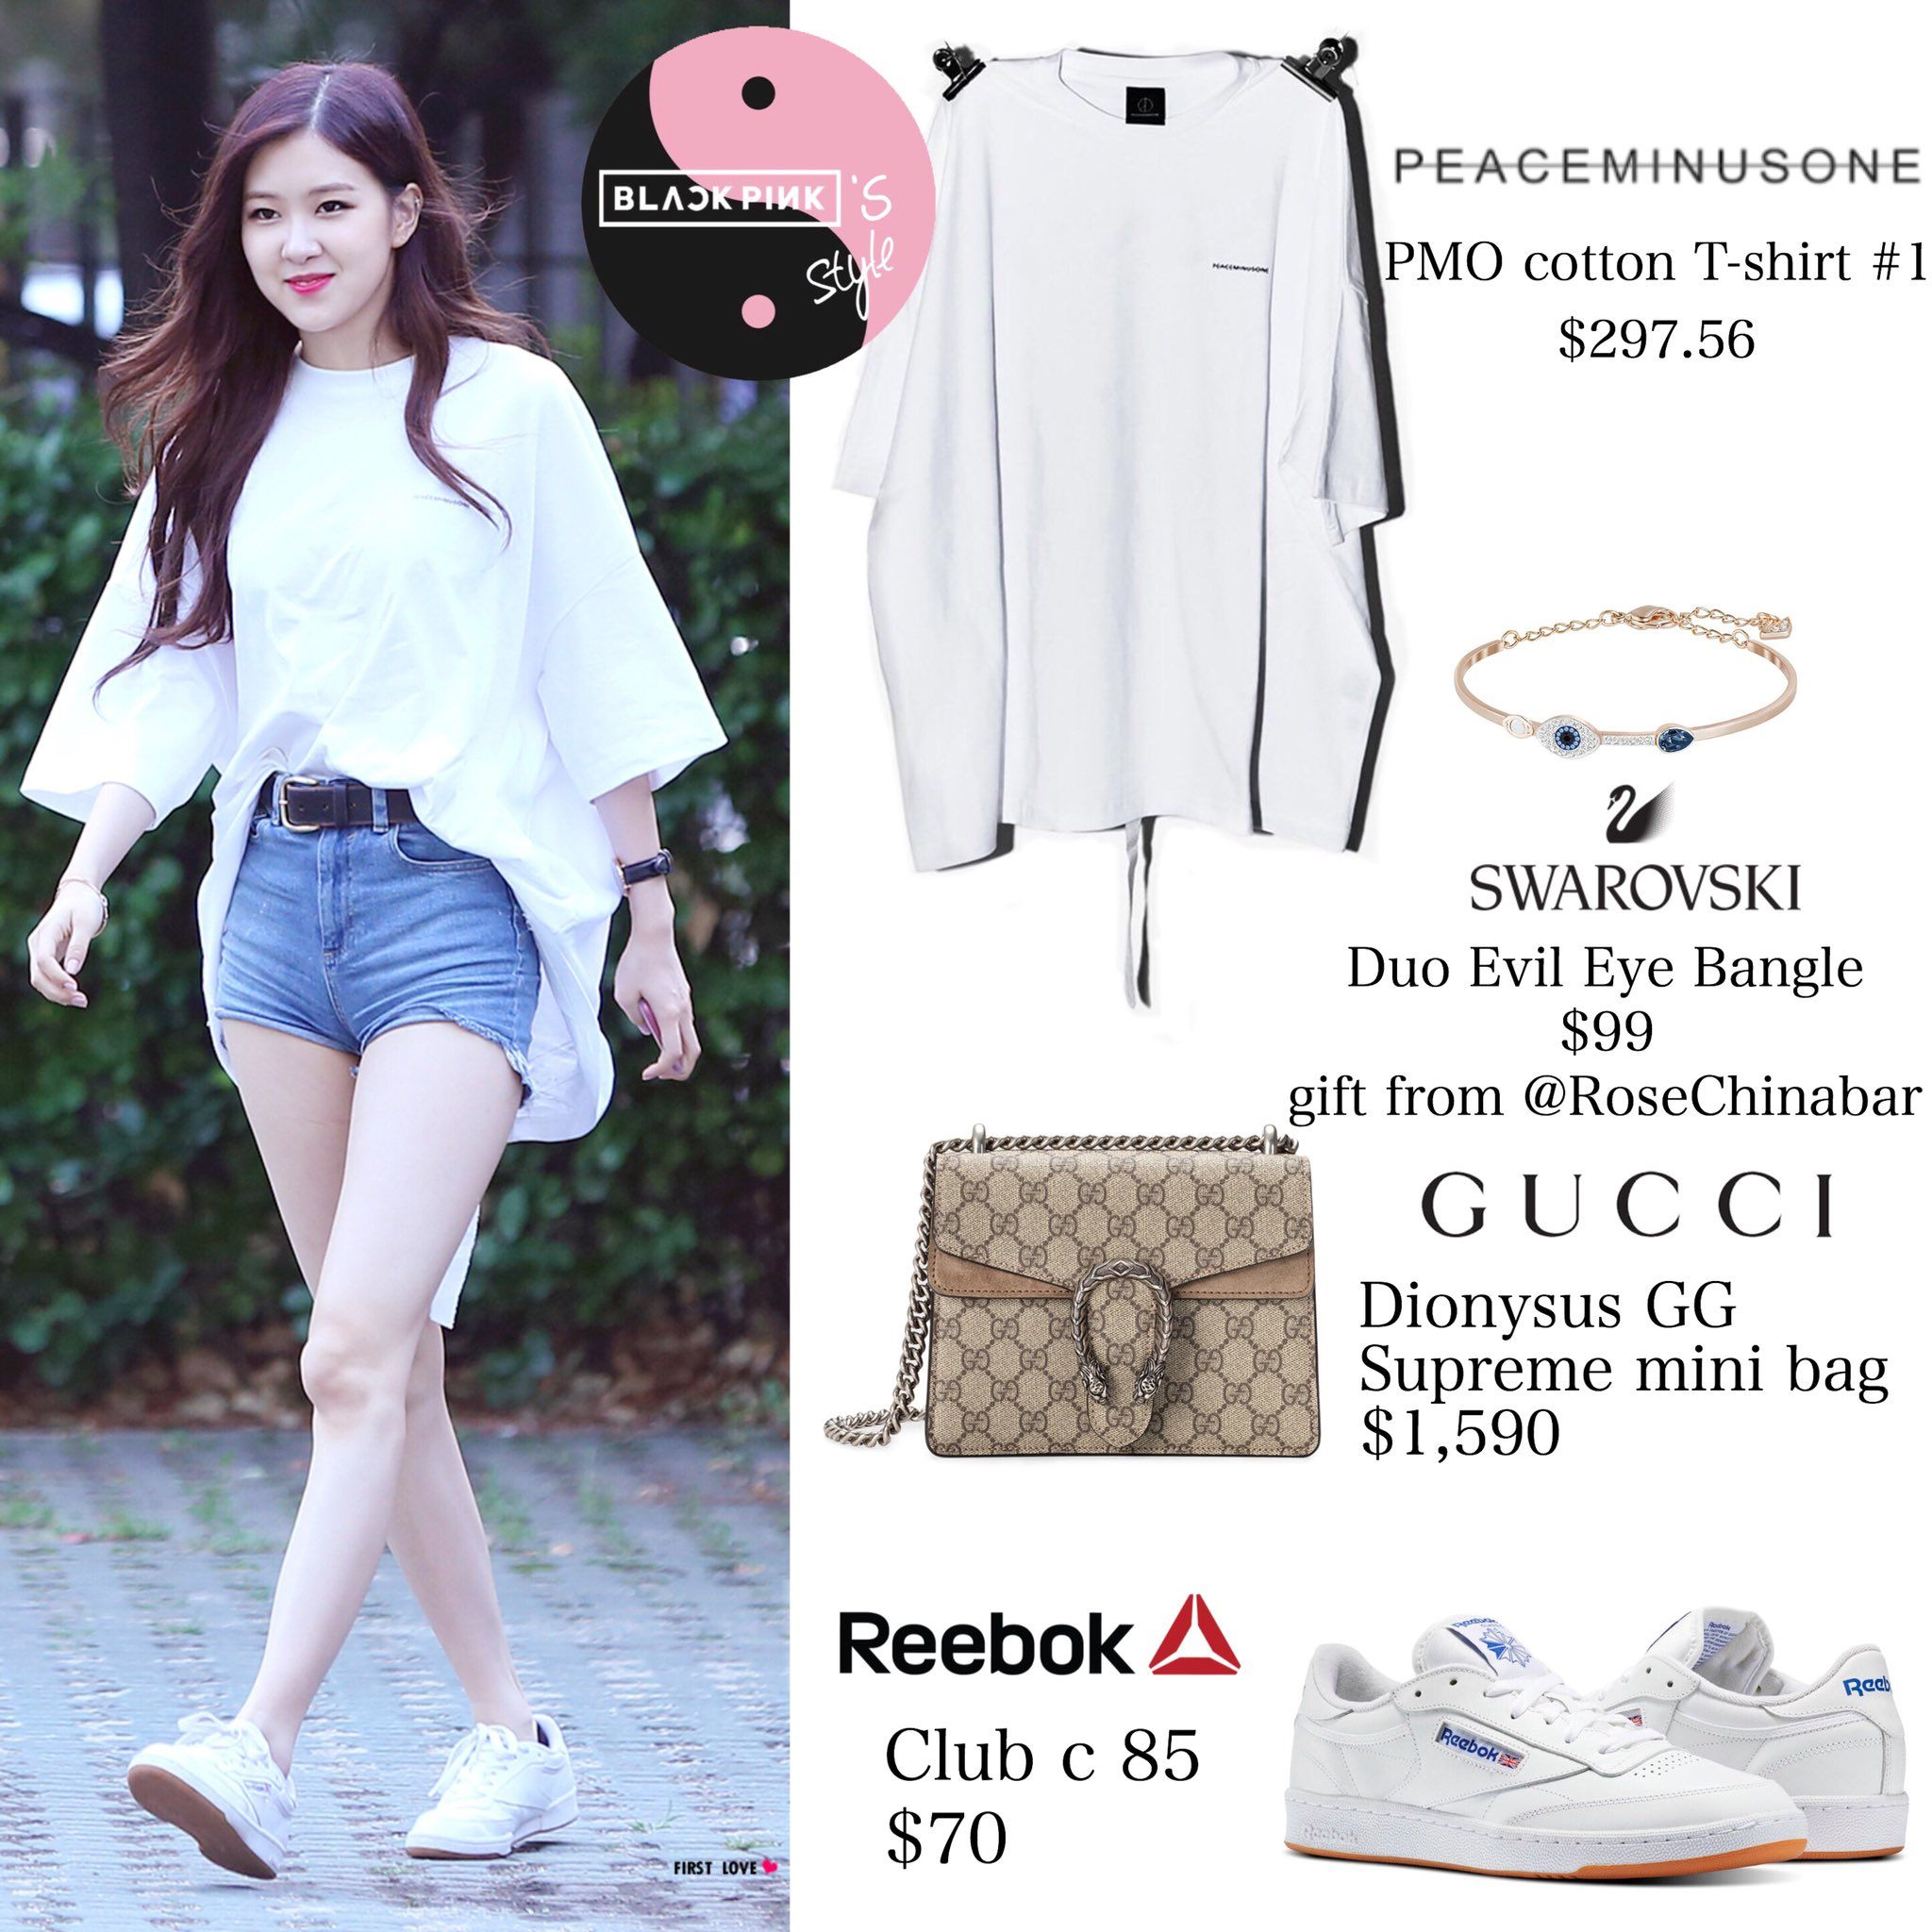 Pin By Iselin Vang On Blackpink Blackpink Fashion Kpop Outfits Fashion